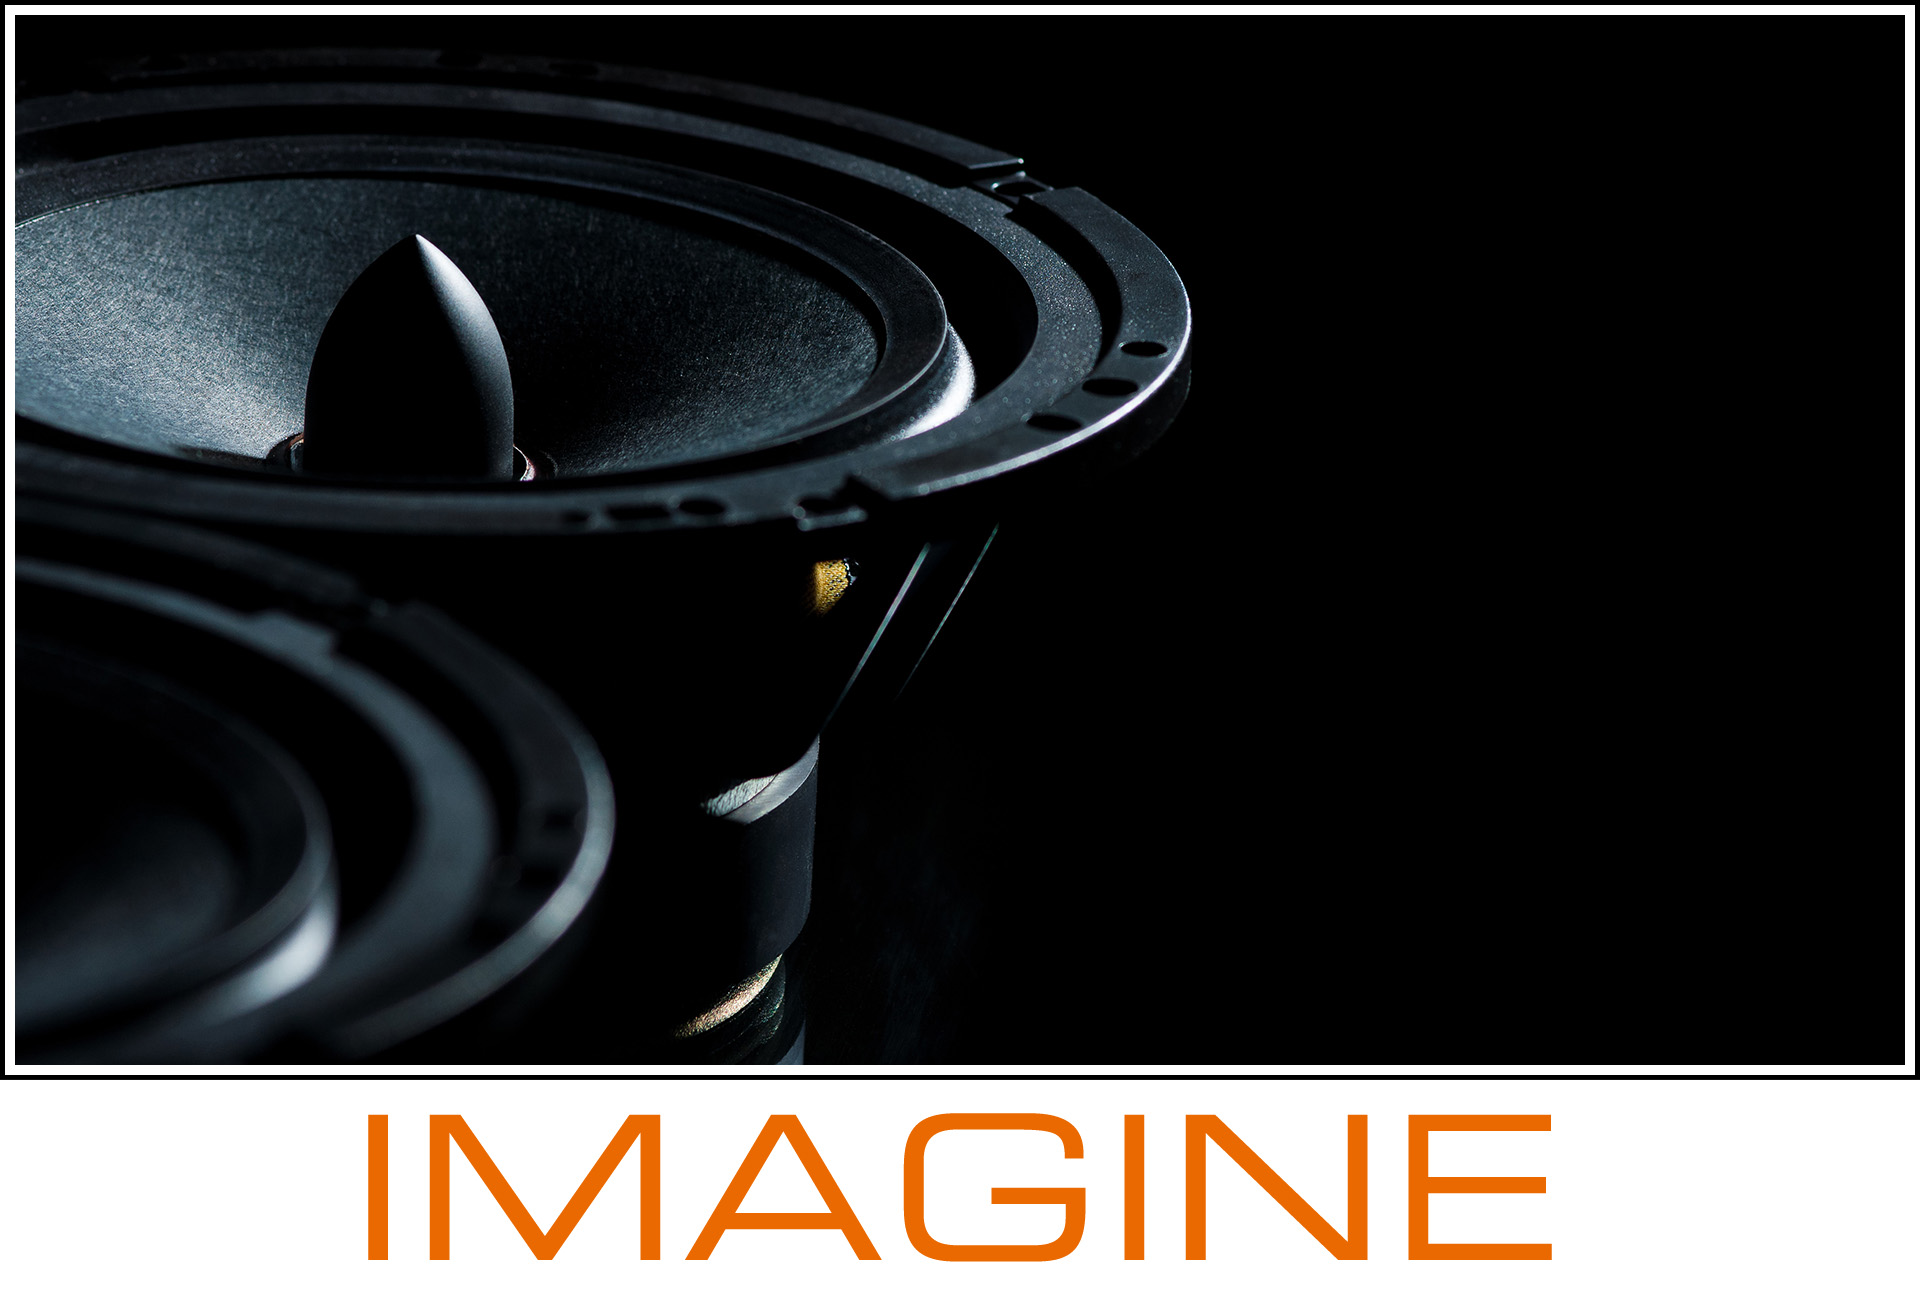 imagine-orange-sm